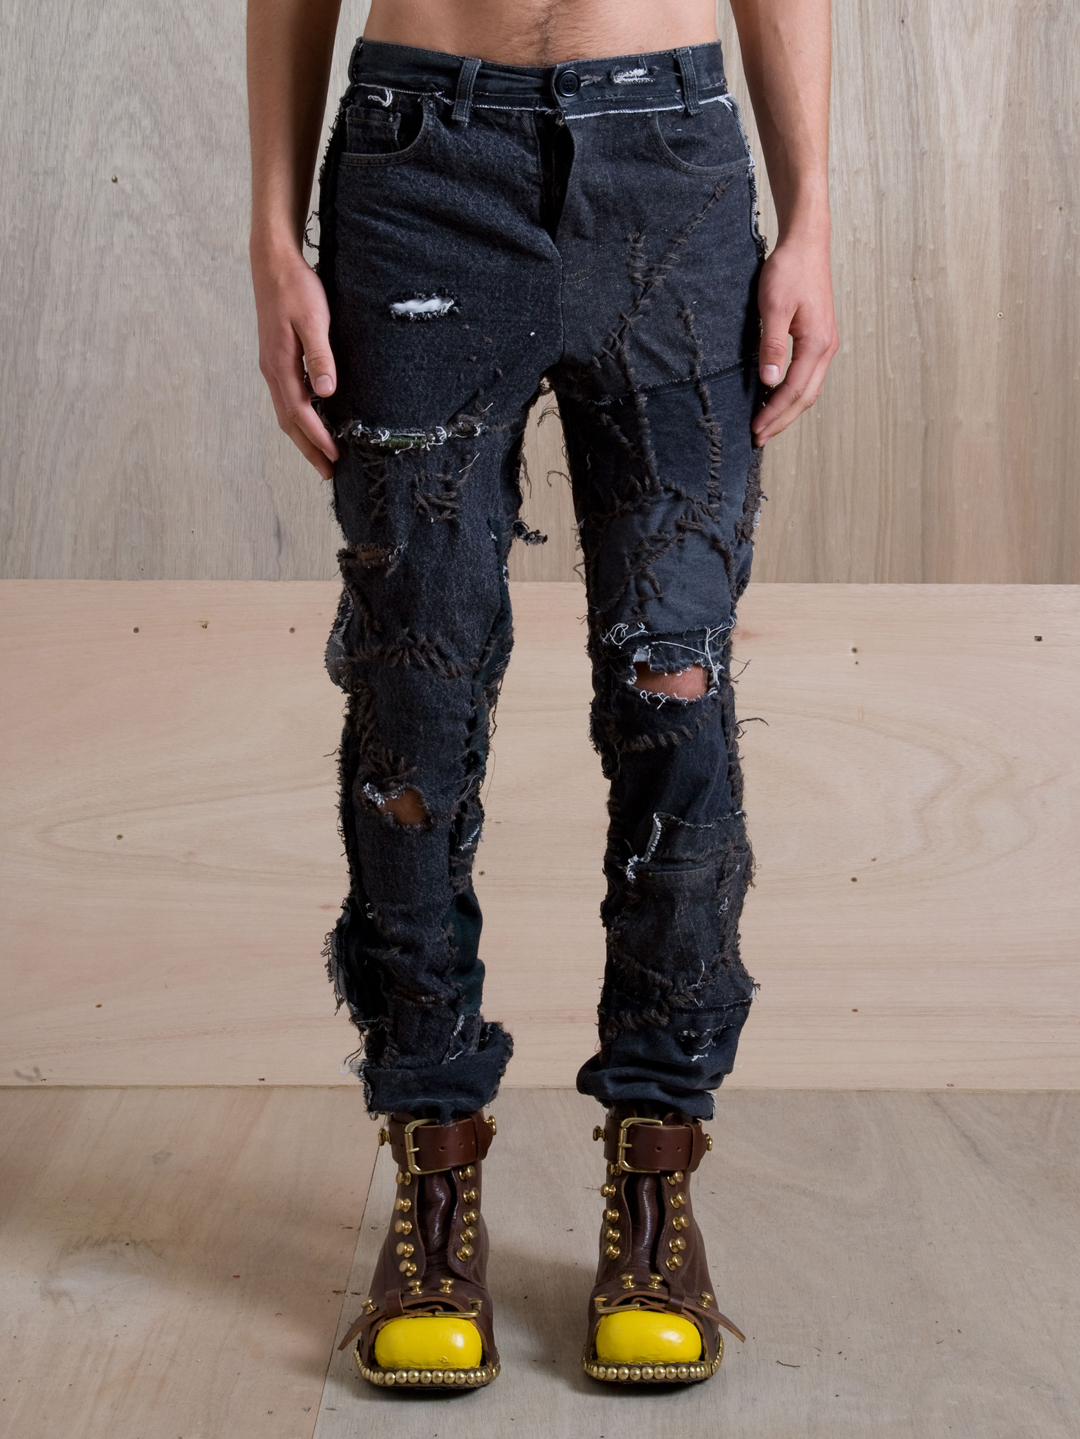 Exclusive Denim Adidas Top Ten 2000 Swaggy P Pes For: J.W.Anderson Jw Anderson Mens Exclusive